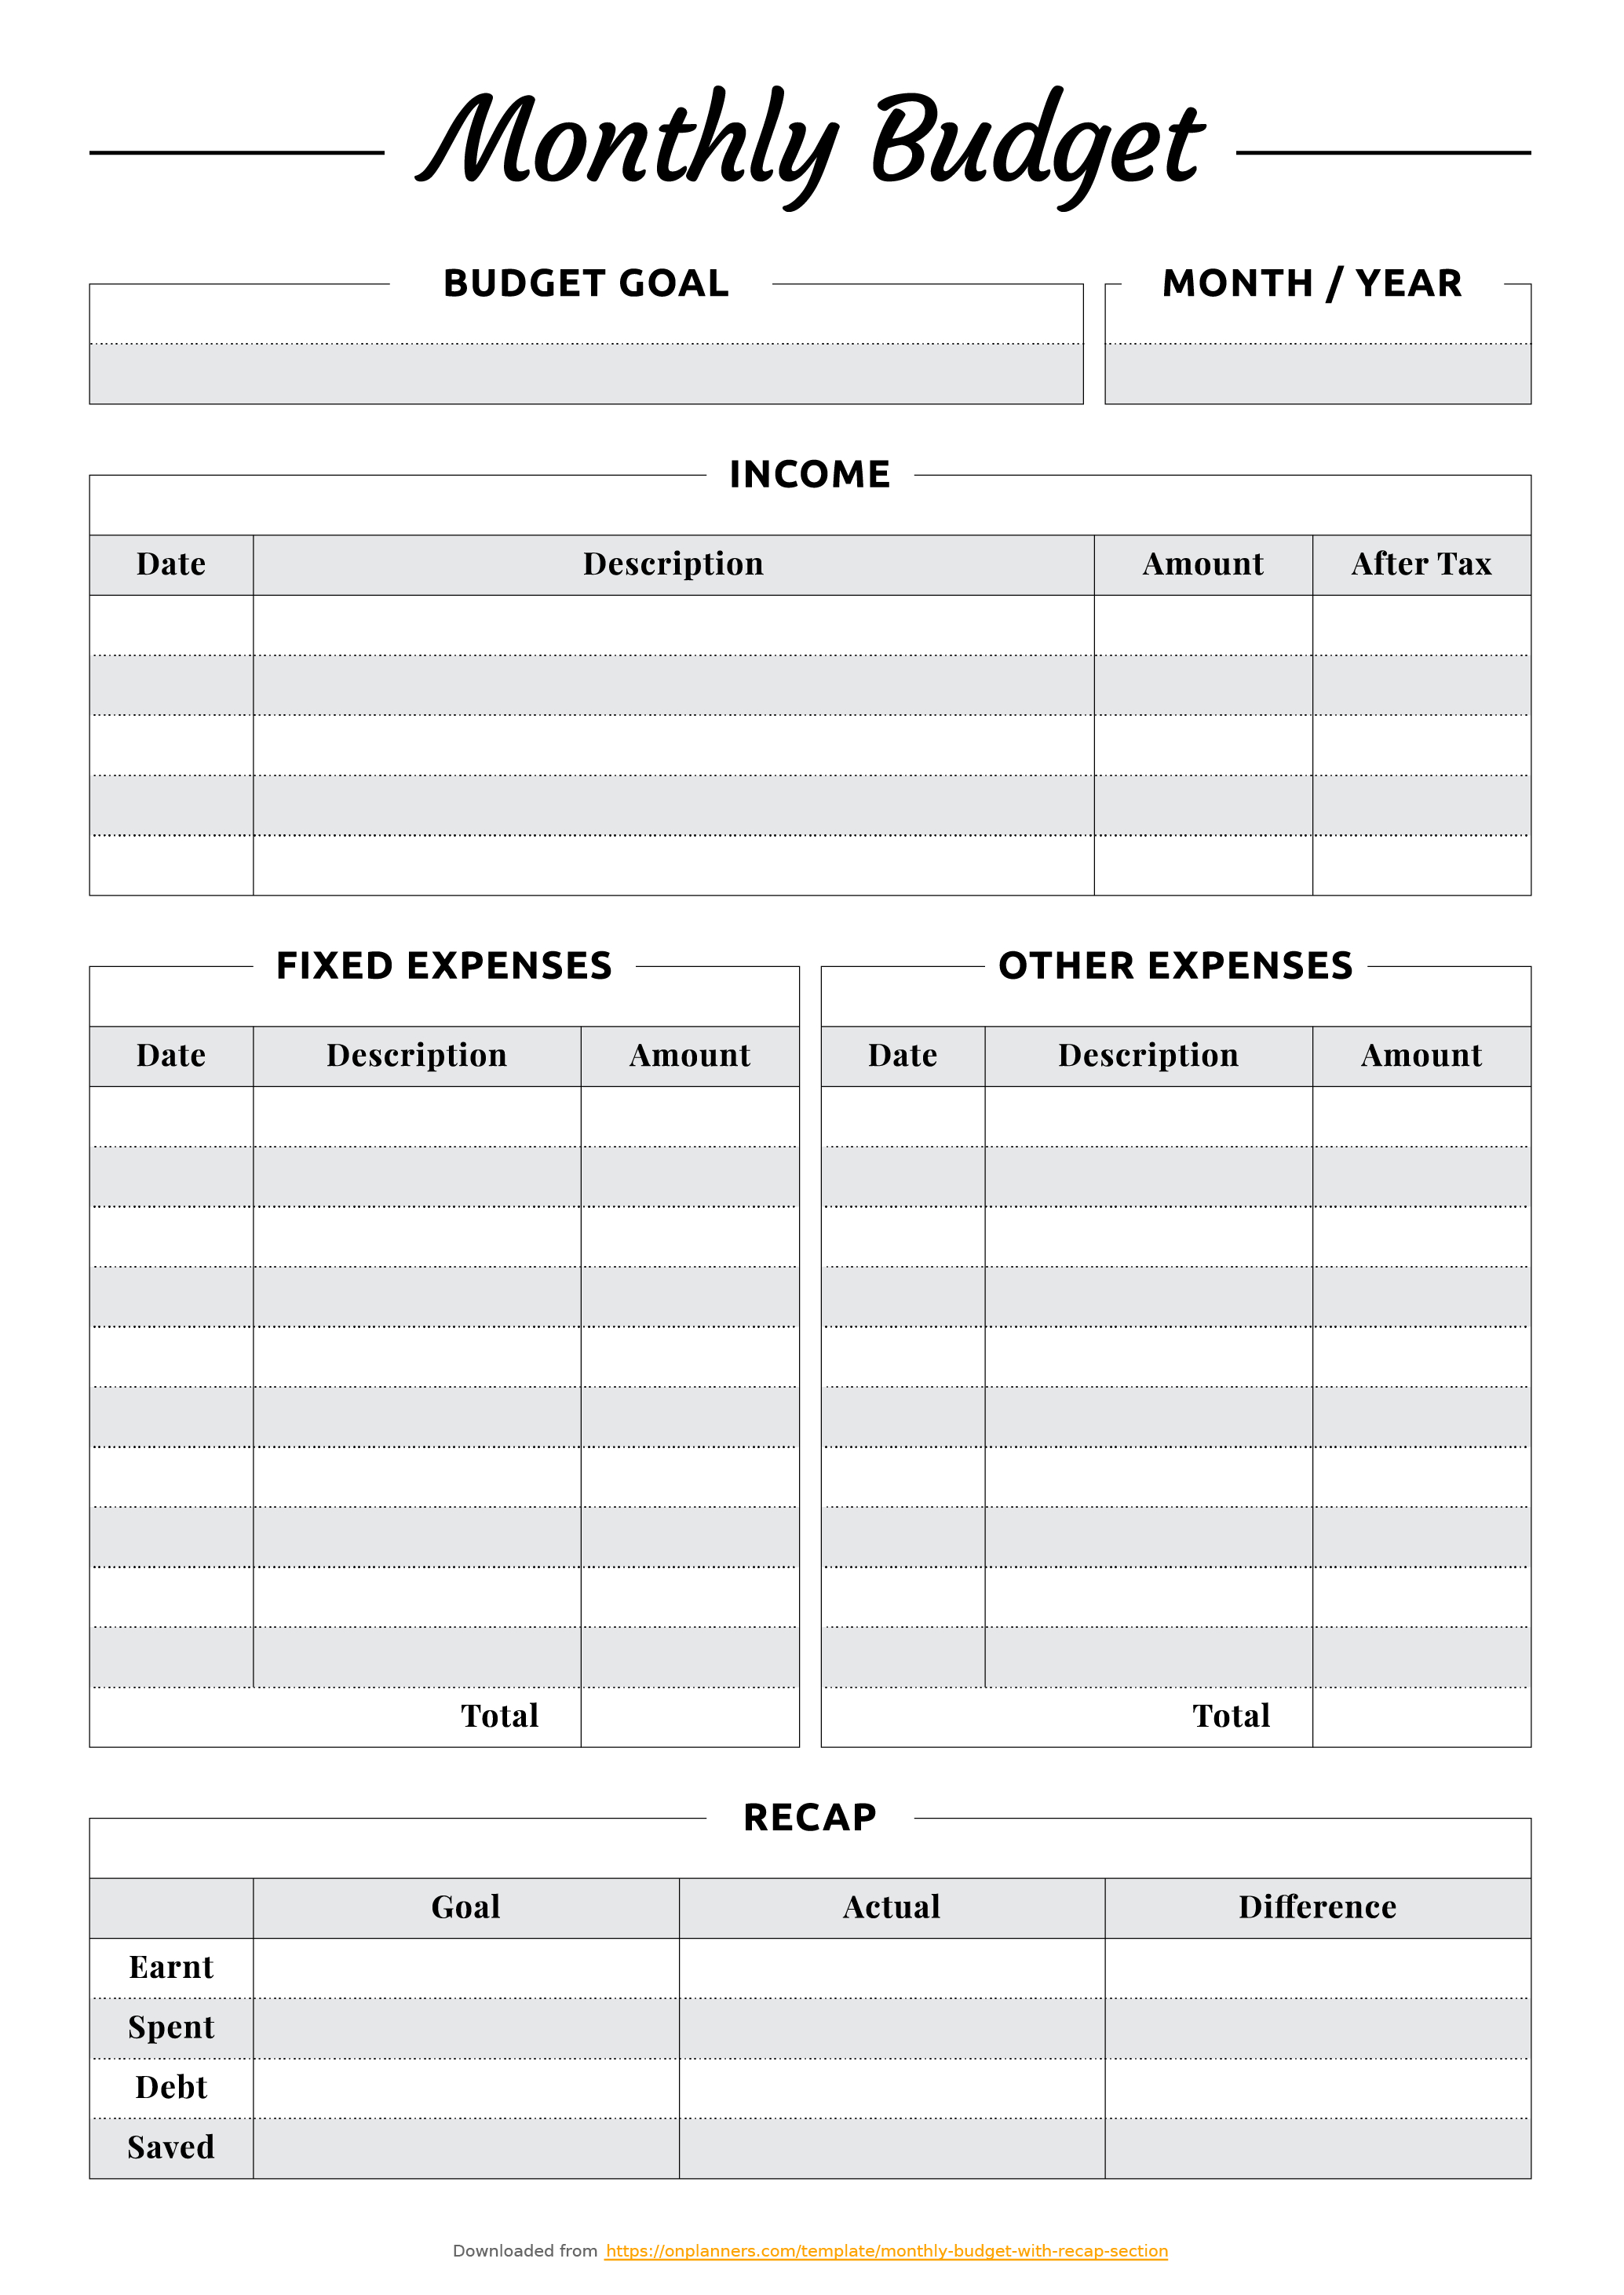 Free Printable Monthly Budget With Recap Section Pdf Download intended for Monthly Bills Template With Account Number And Address